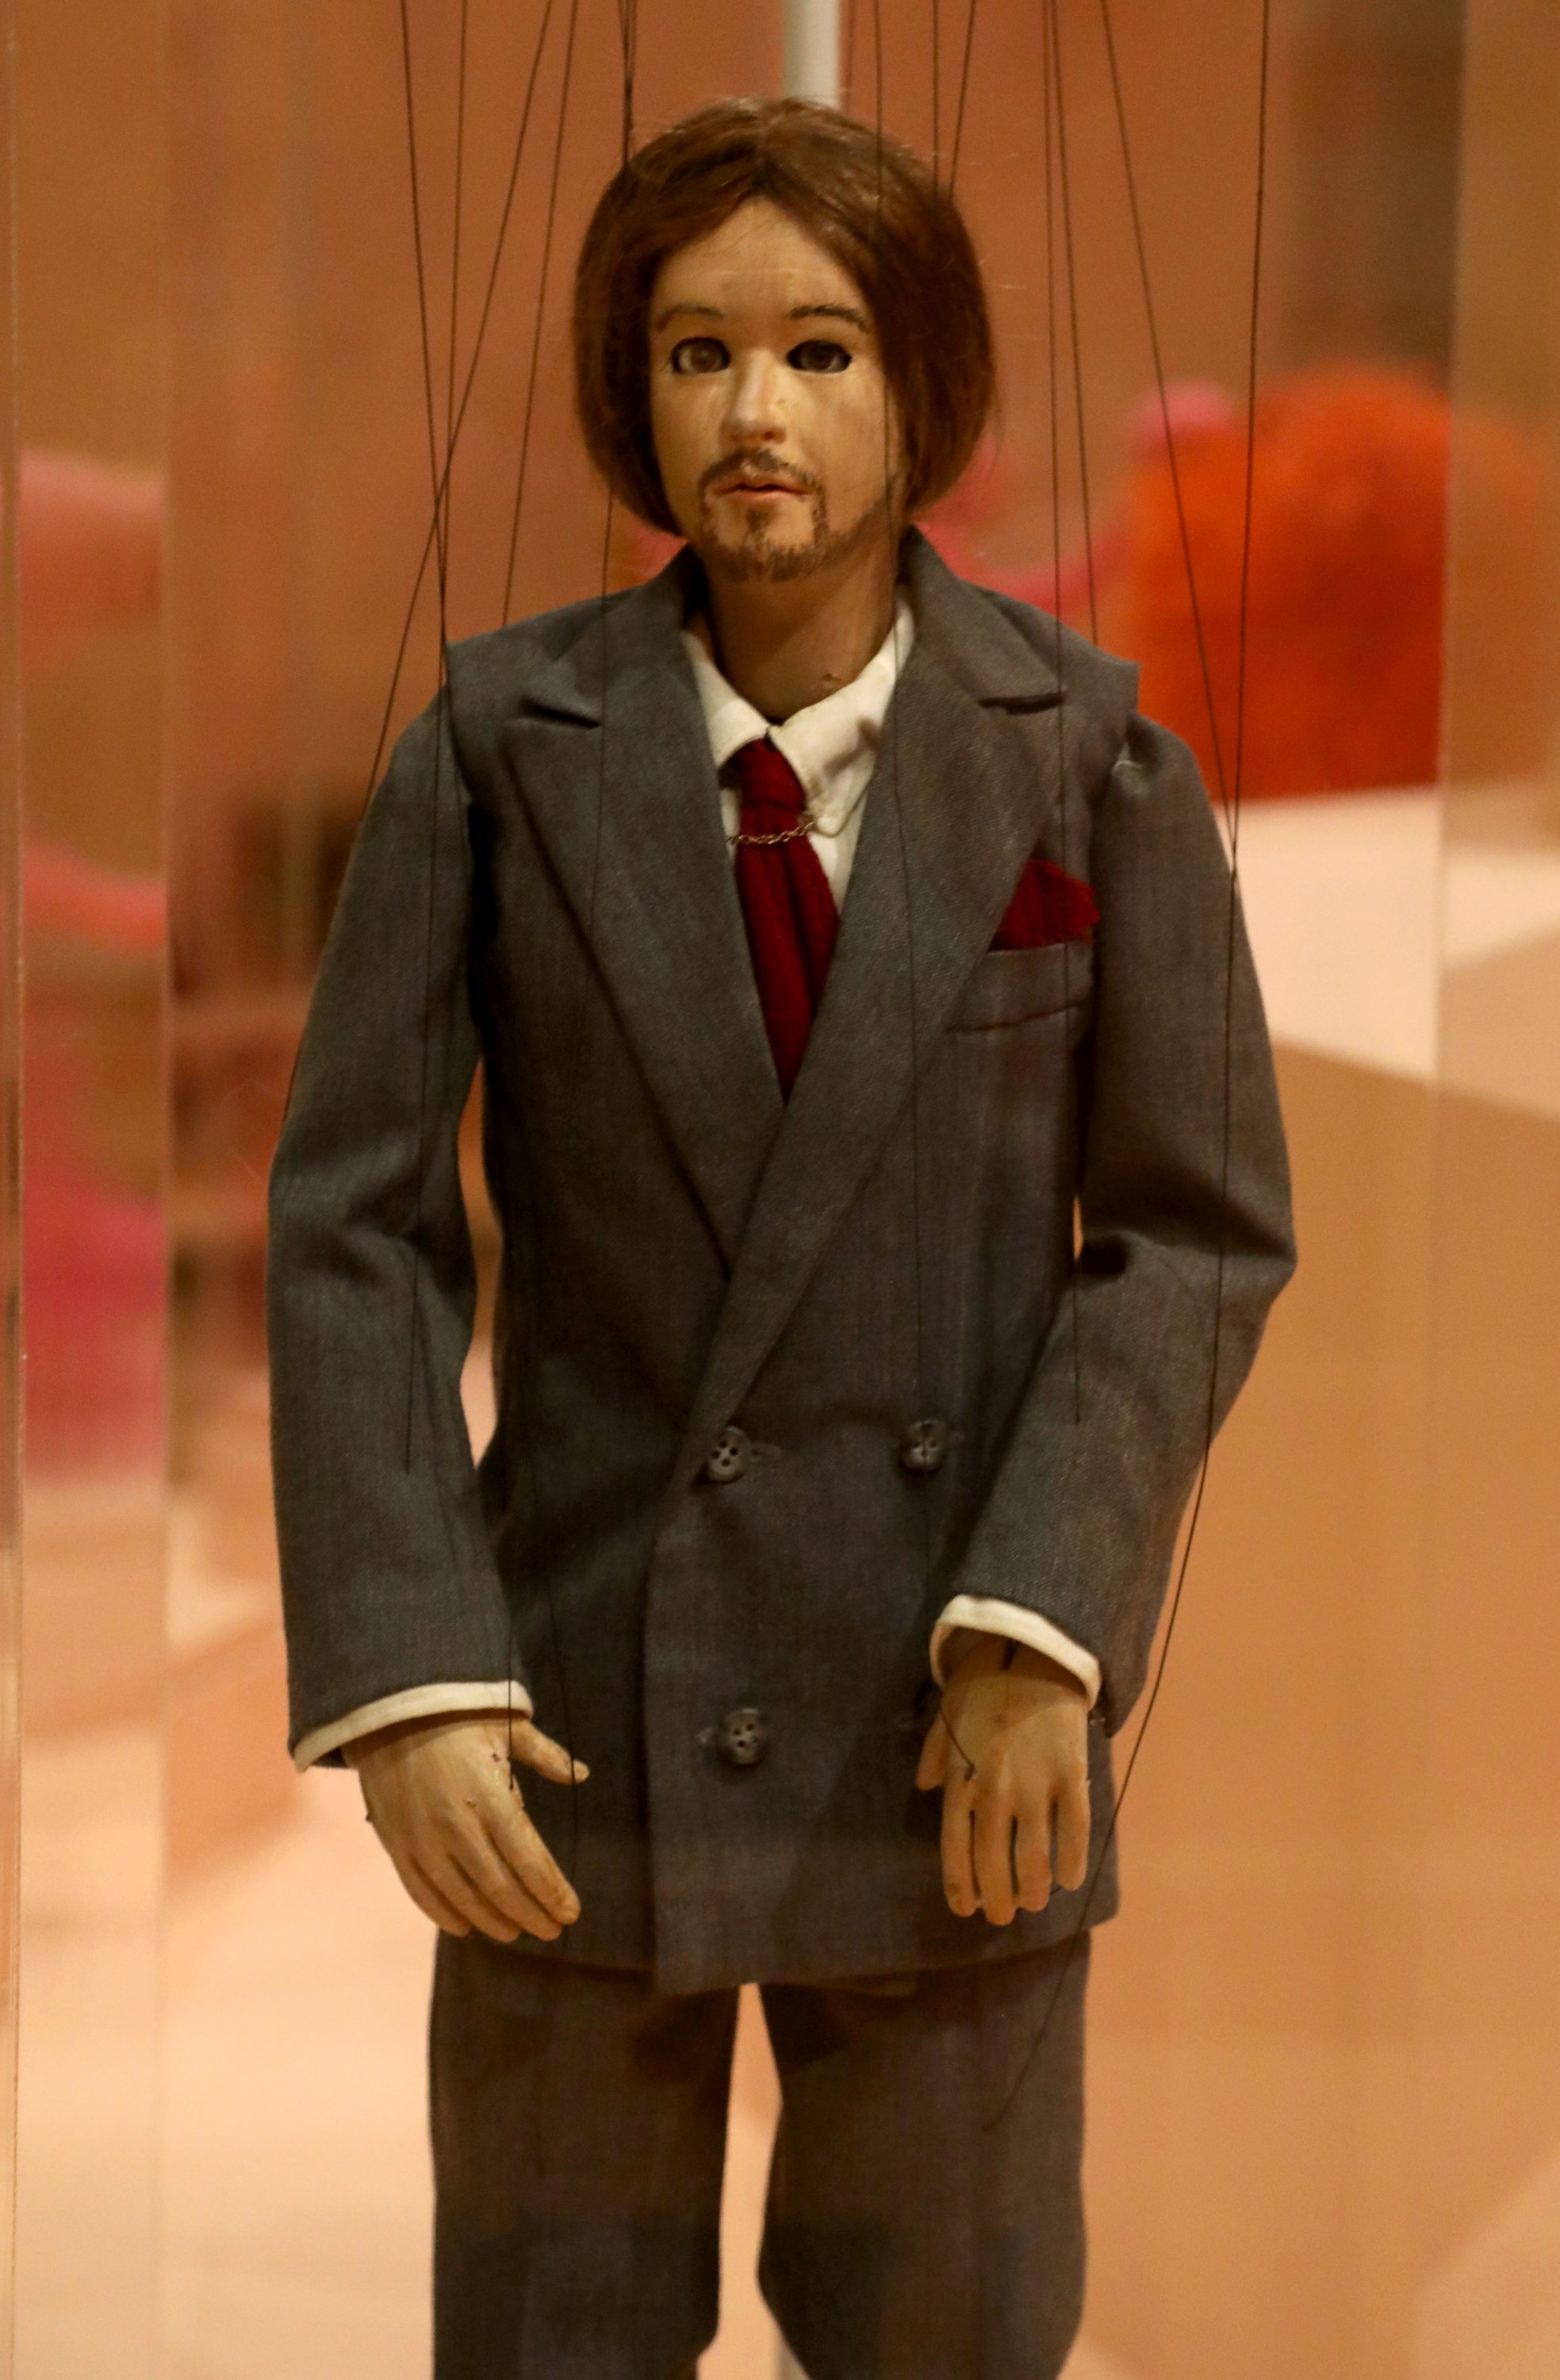 This puppet from the Spike Jonze classic 'Being John Malkovich' is among those at the Puppets of New York show at The Museum of City of New York, New York, U.S. (DPA Photo)